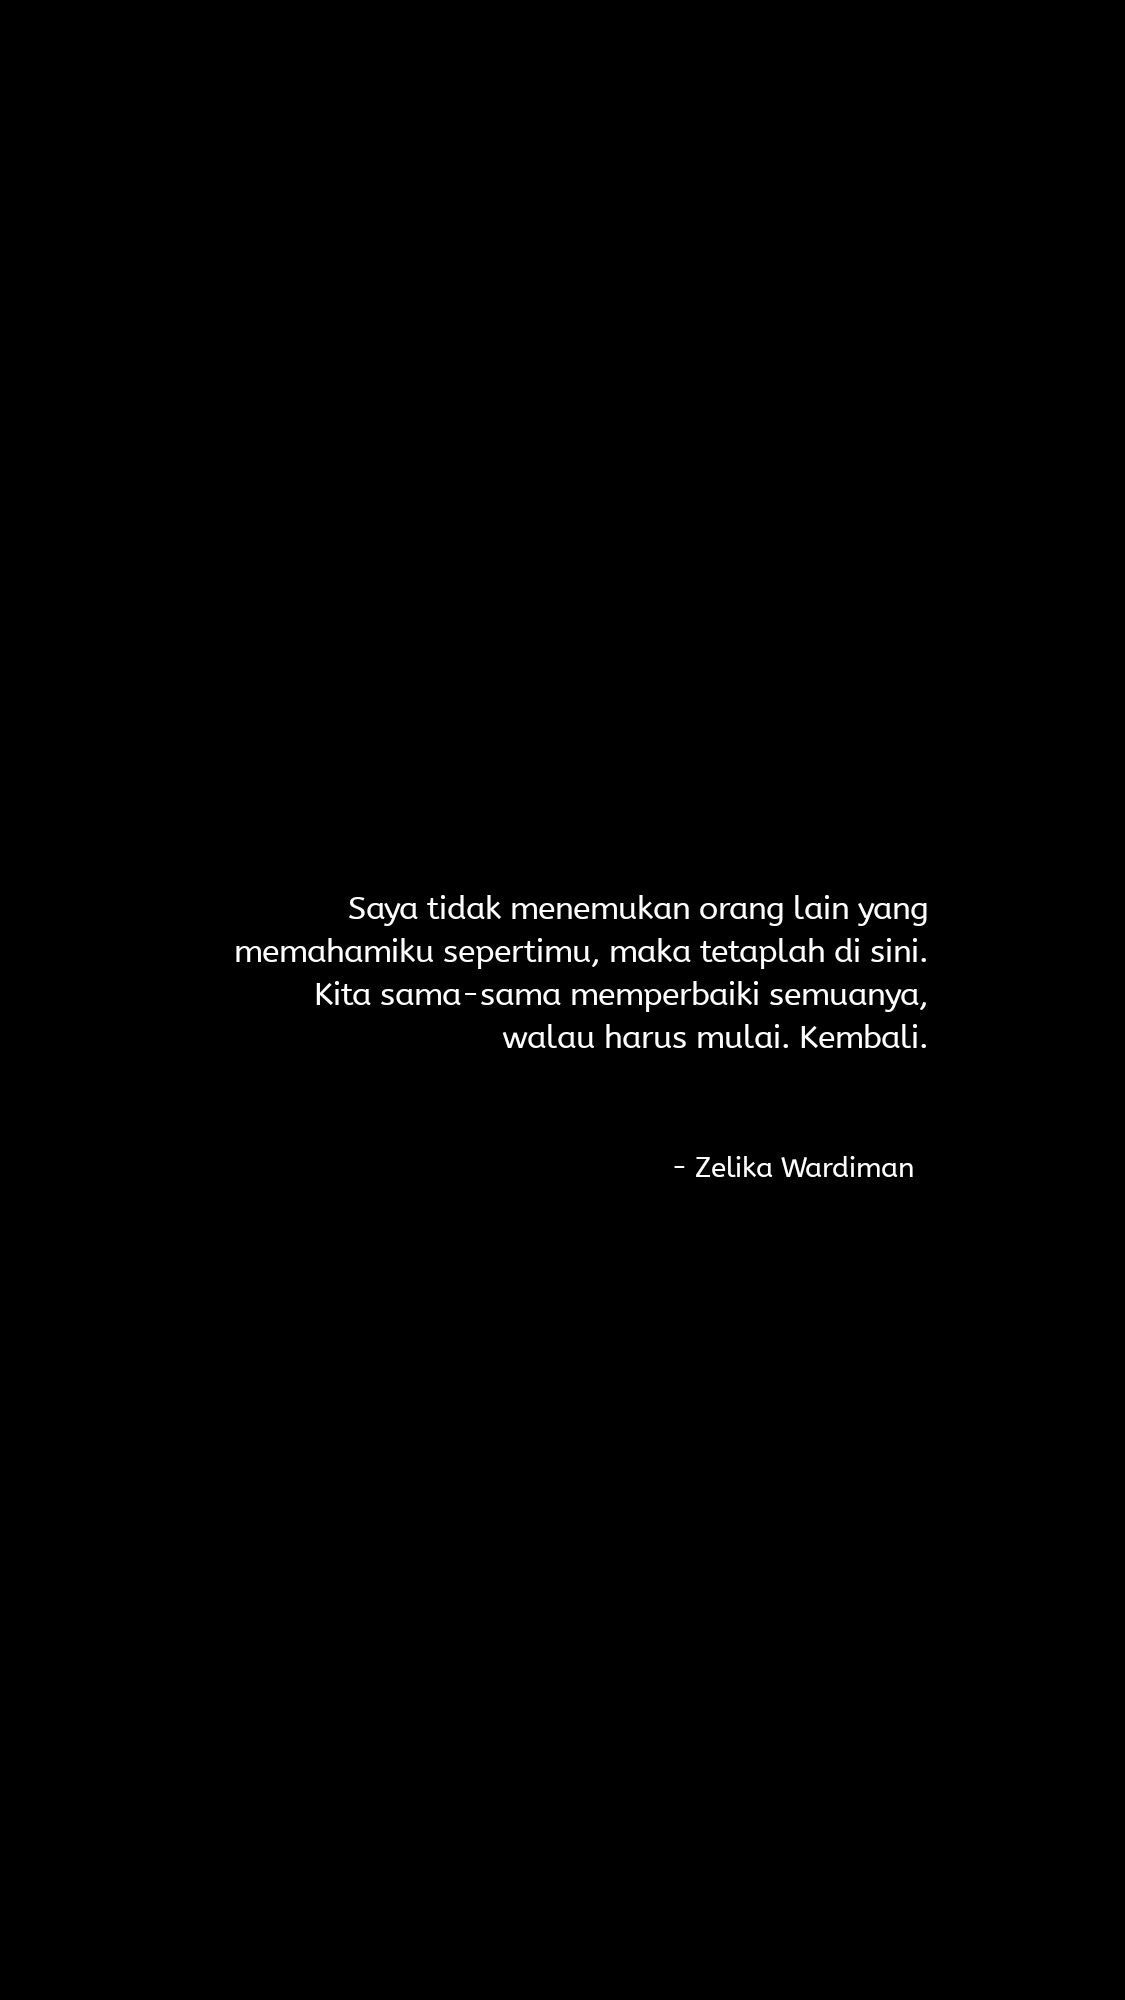 Pin By Shabylla On Sobat Ambyar Postive Quotes Reminder Quotes